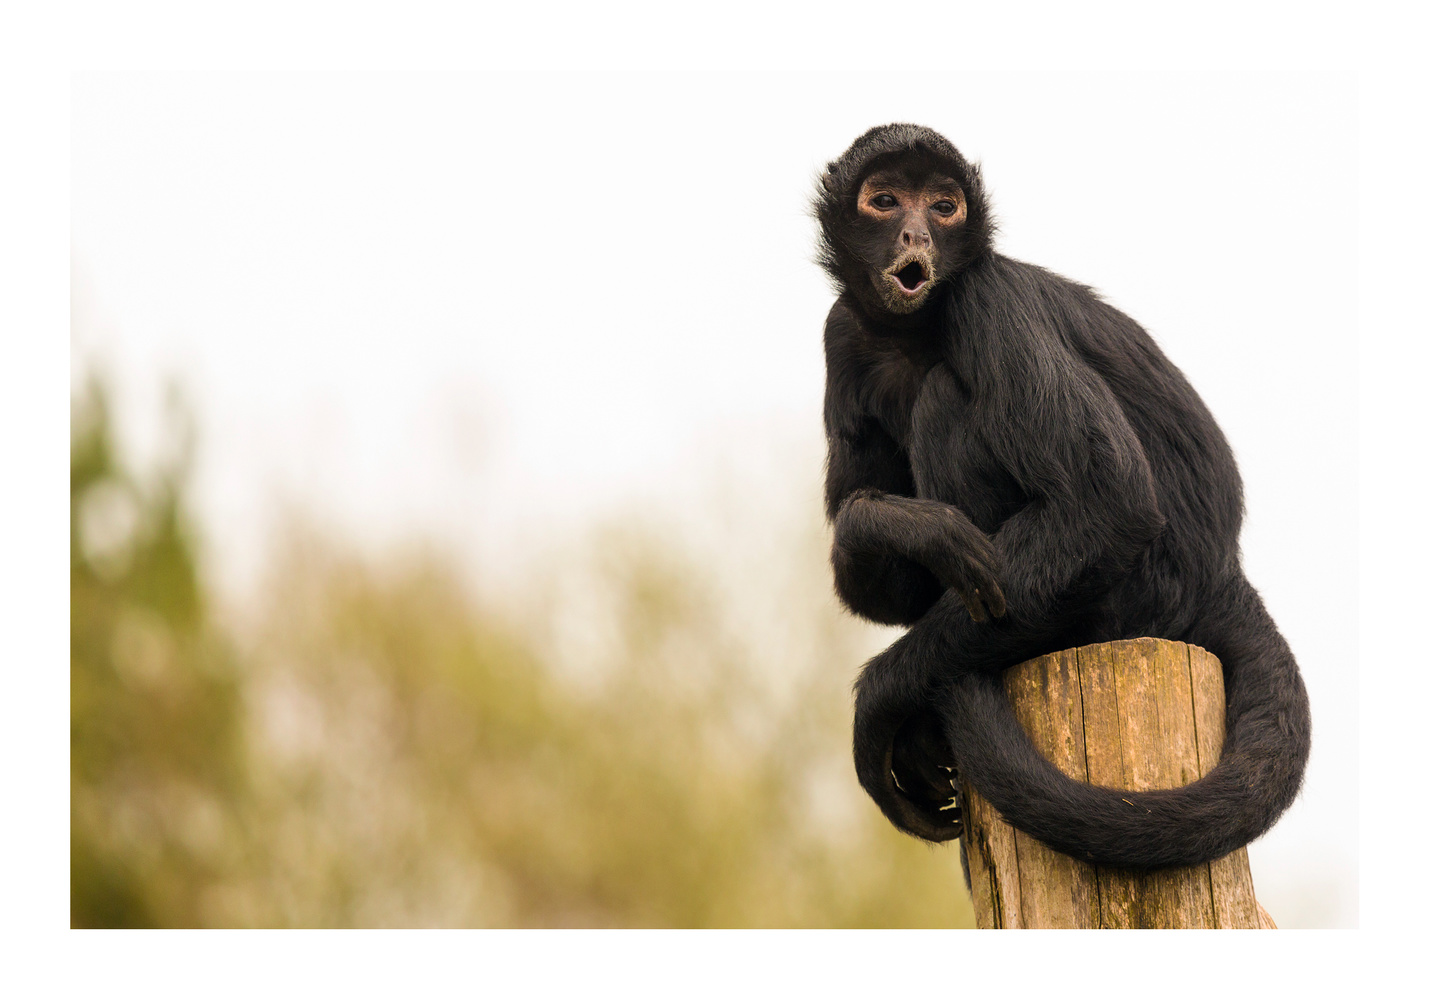 Black-headed Spider Monkey (Ateles fusciceps) by Clare Lusher